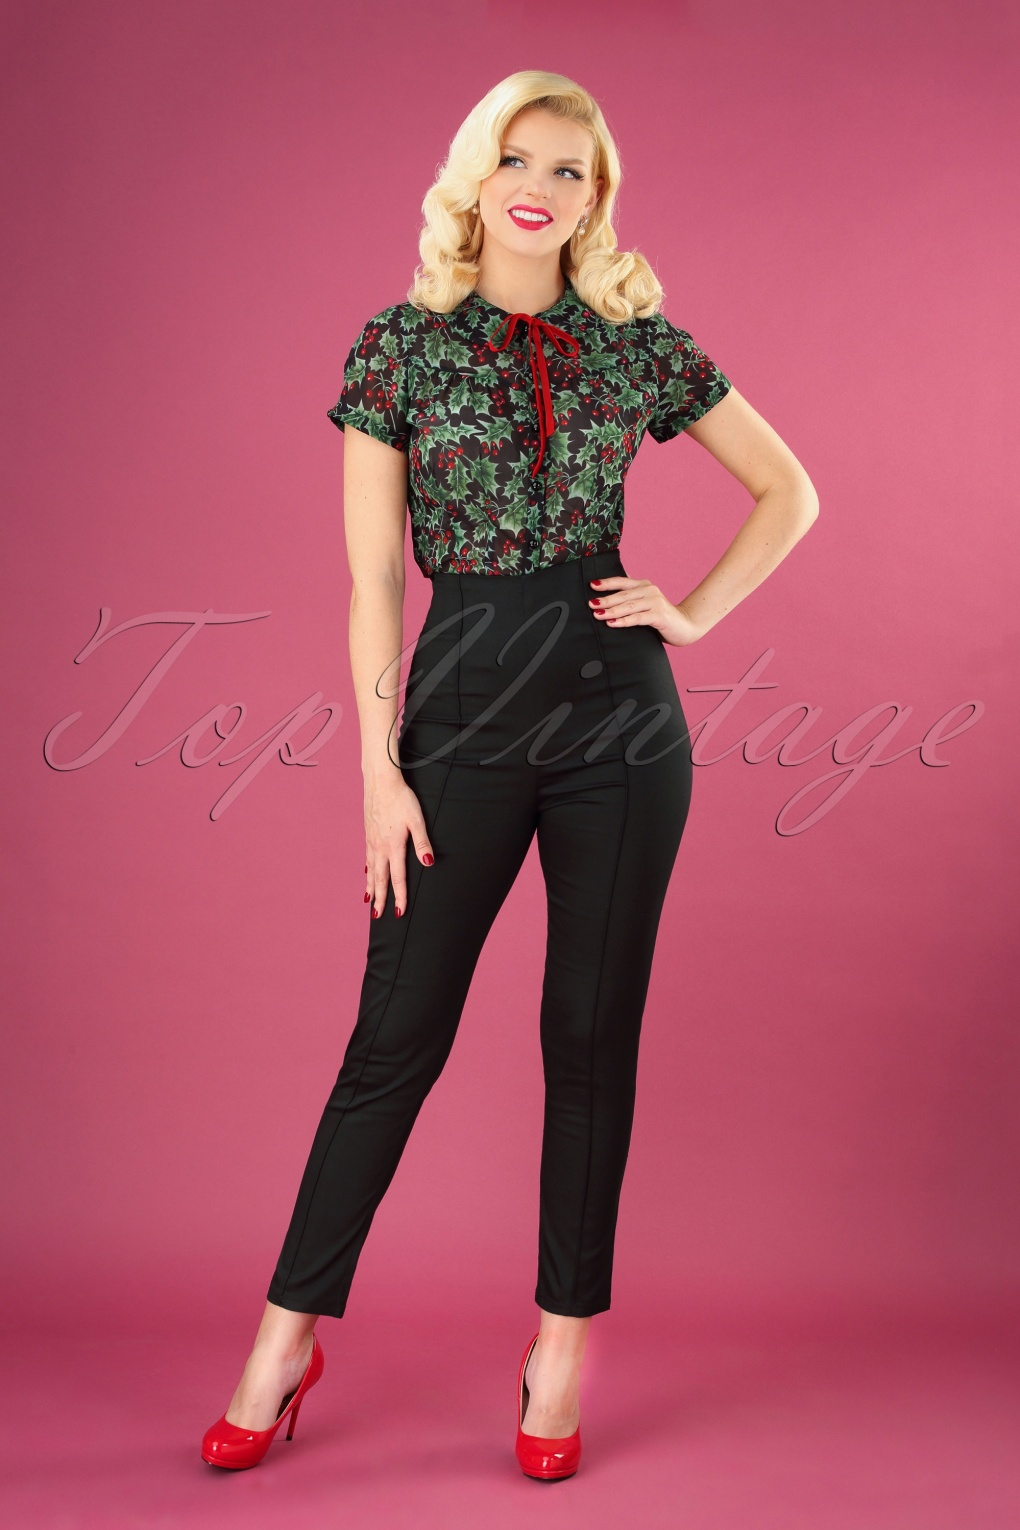 Vintage High Waisted Trousers, Sailor Pants, Jeans 50s Bonnie Trousers in Black £41.12 AT vintagedancer.com